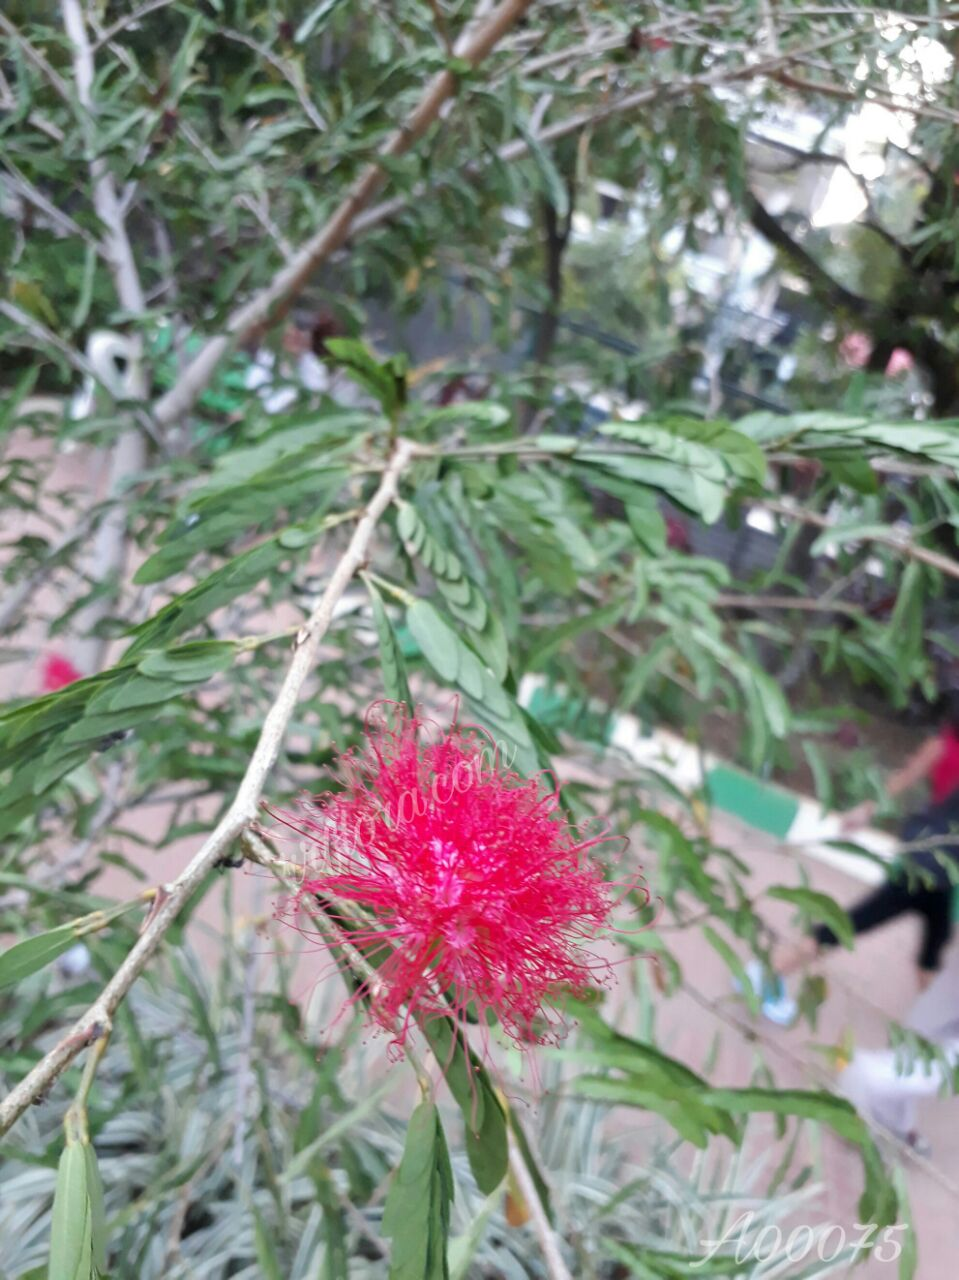 Beautiful and attractive red colour flower at Koramangala, Bangalo